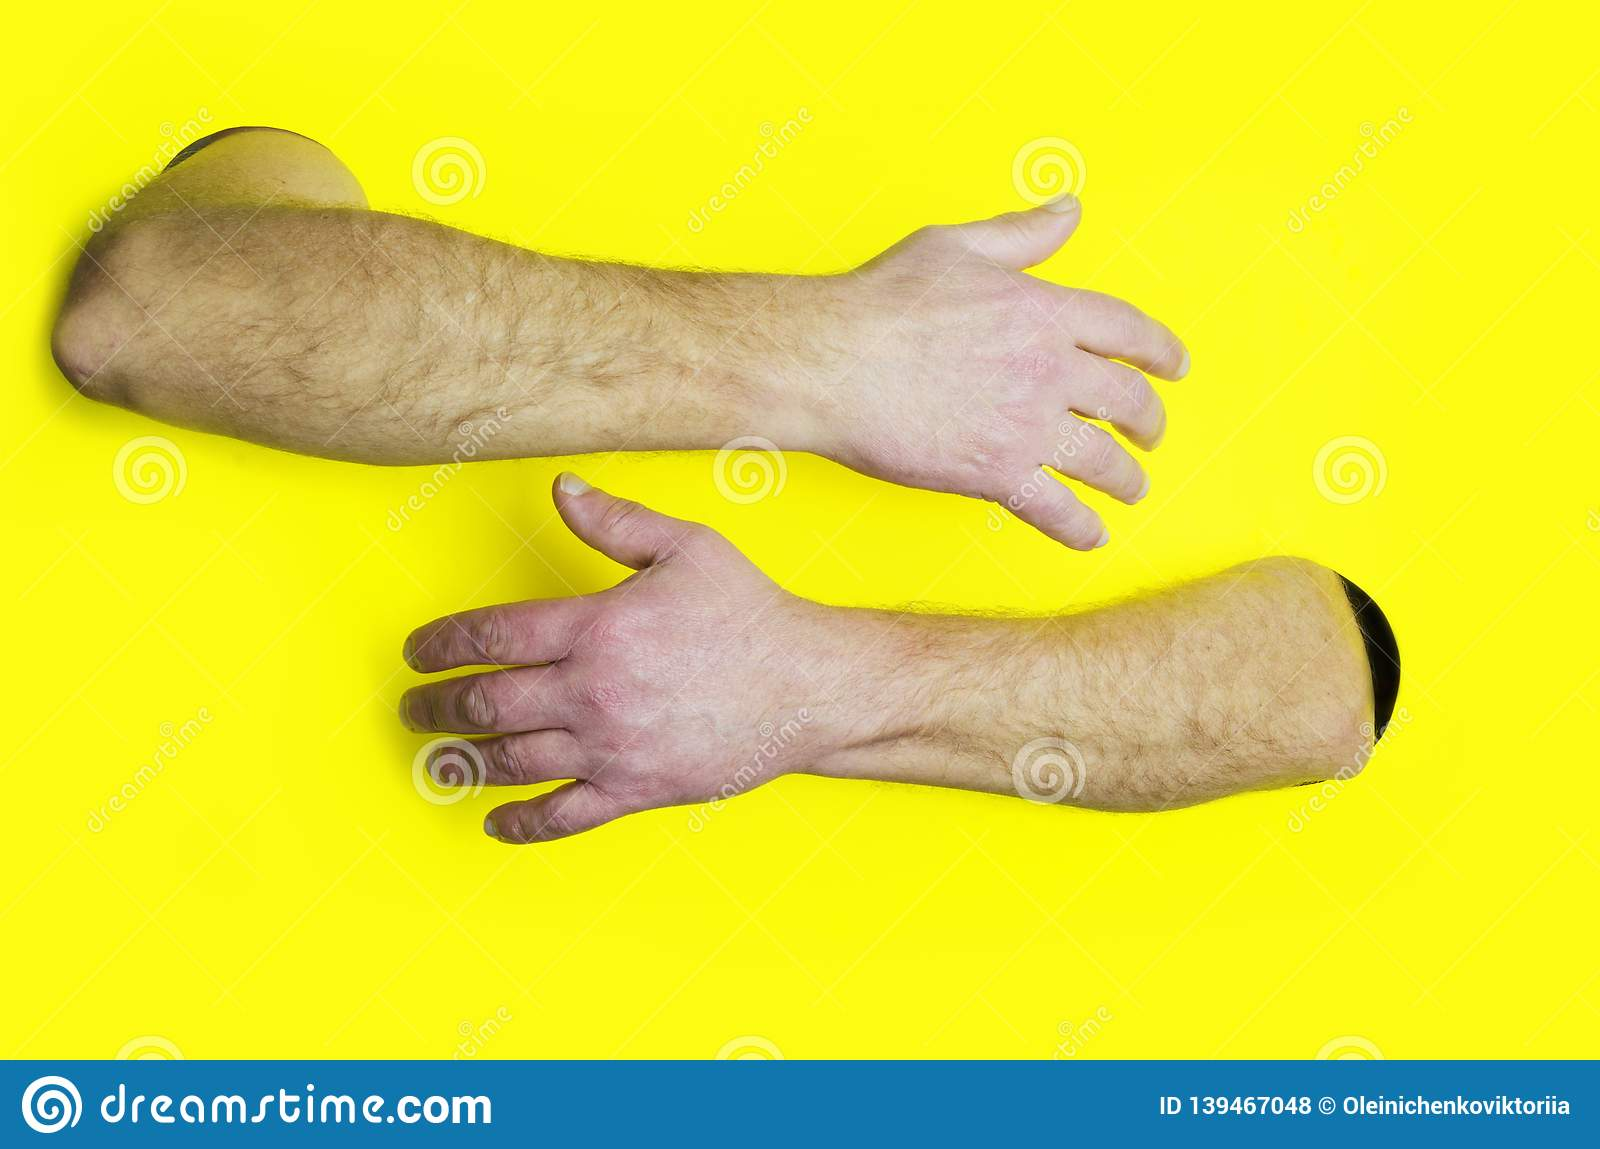 Embrace or hugging design template.Male hands hugging somebody against yellow background.Concept of support